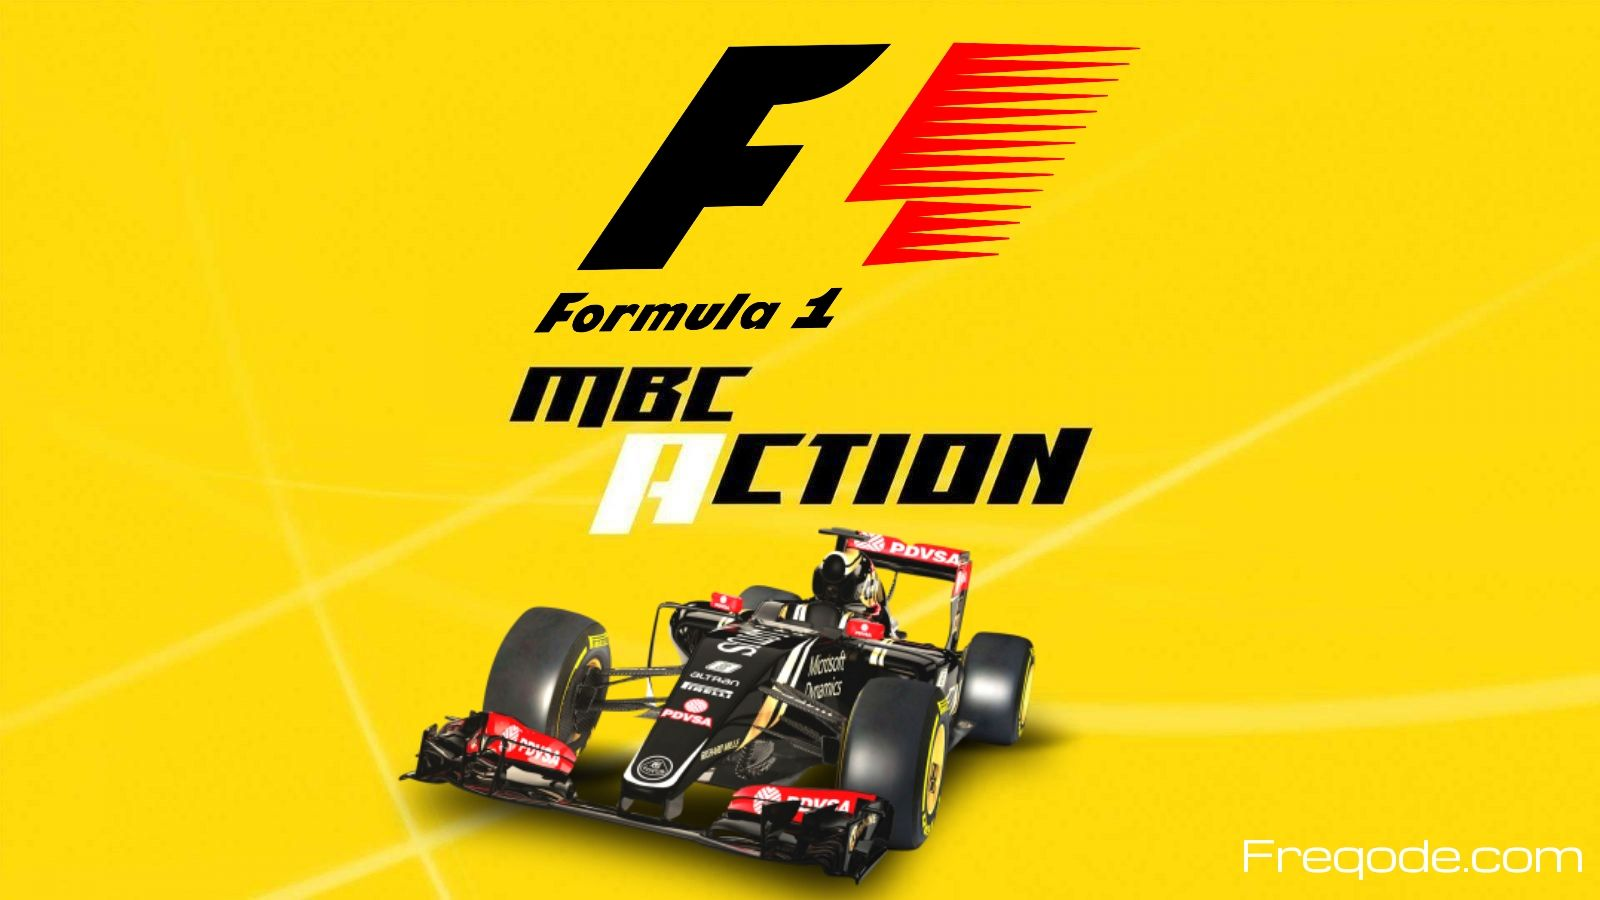 Mbc Action Formula 1 Broadcast 2019 Free Freqode Com Tv Channel Frequency Sports Channel Tv Sport Broadcast